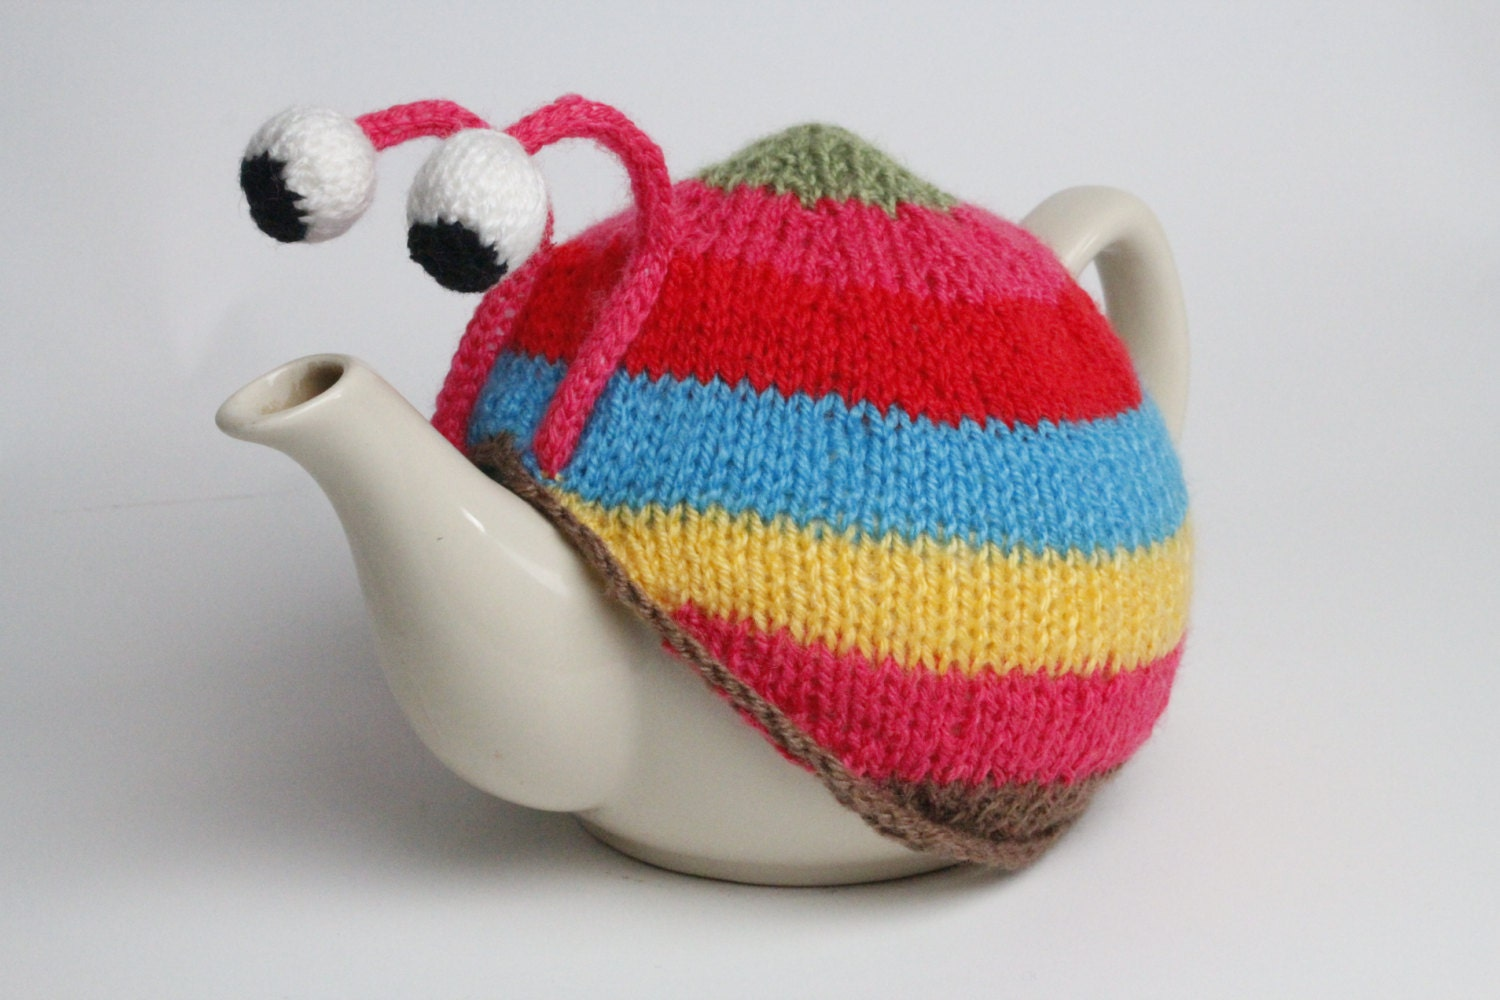 Knitting Pattern For Snail Tea Cosy : Knitted stripy snail tea cosy in pink or blue. Tea by RupertsHouse